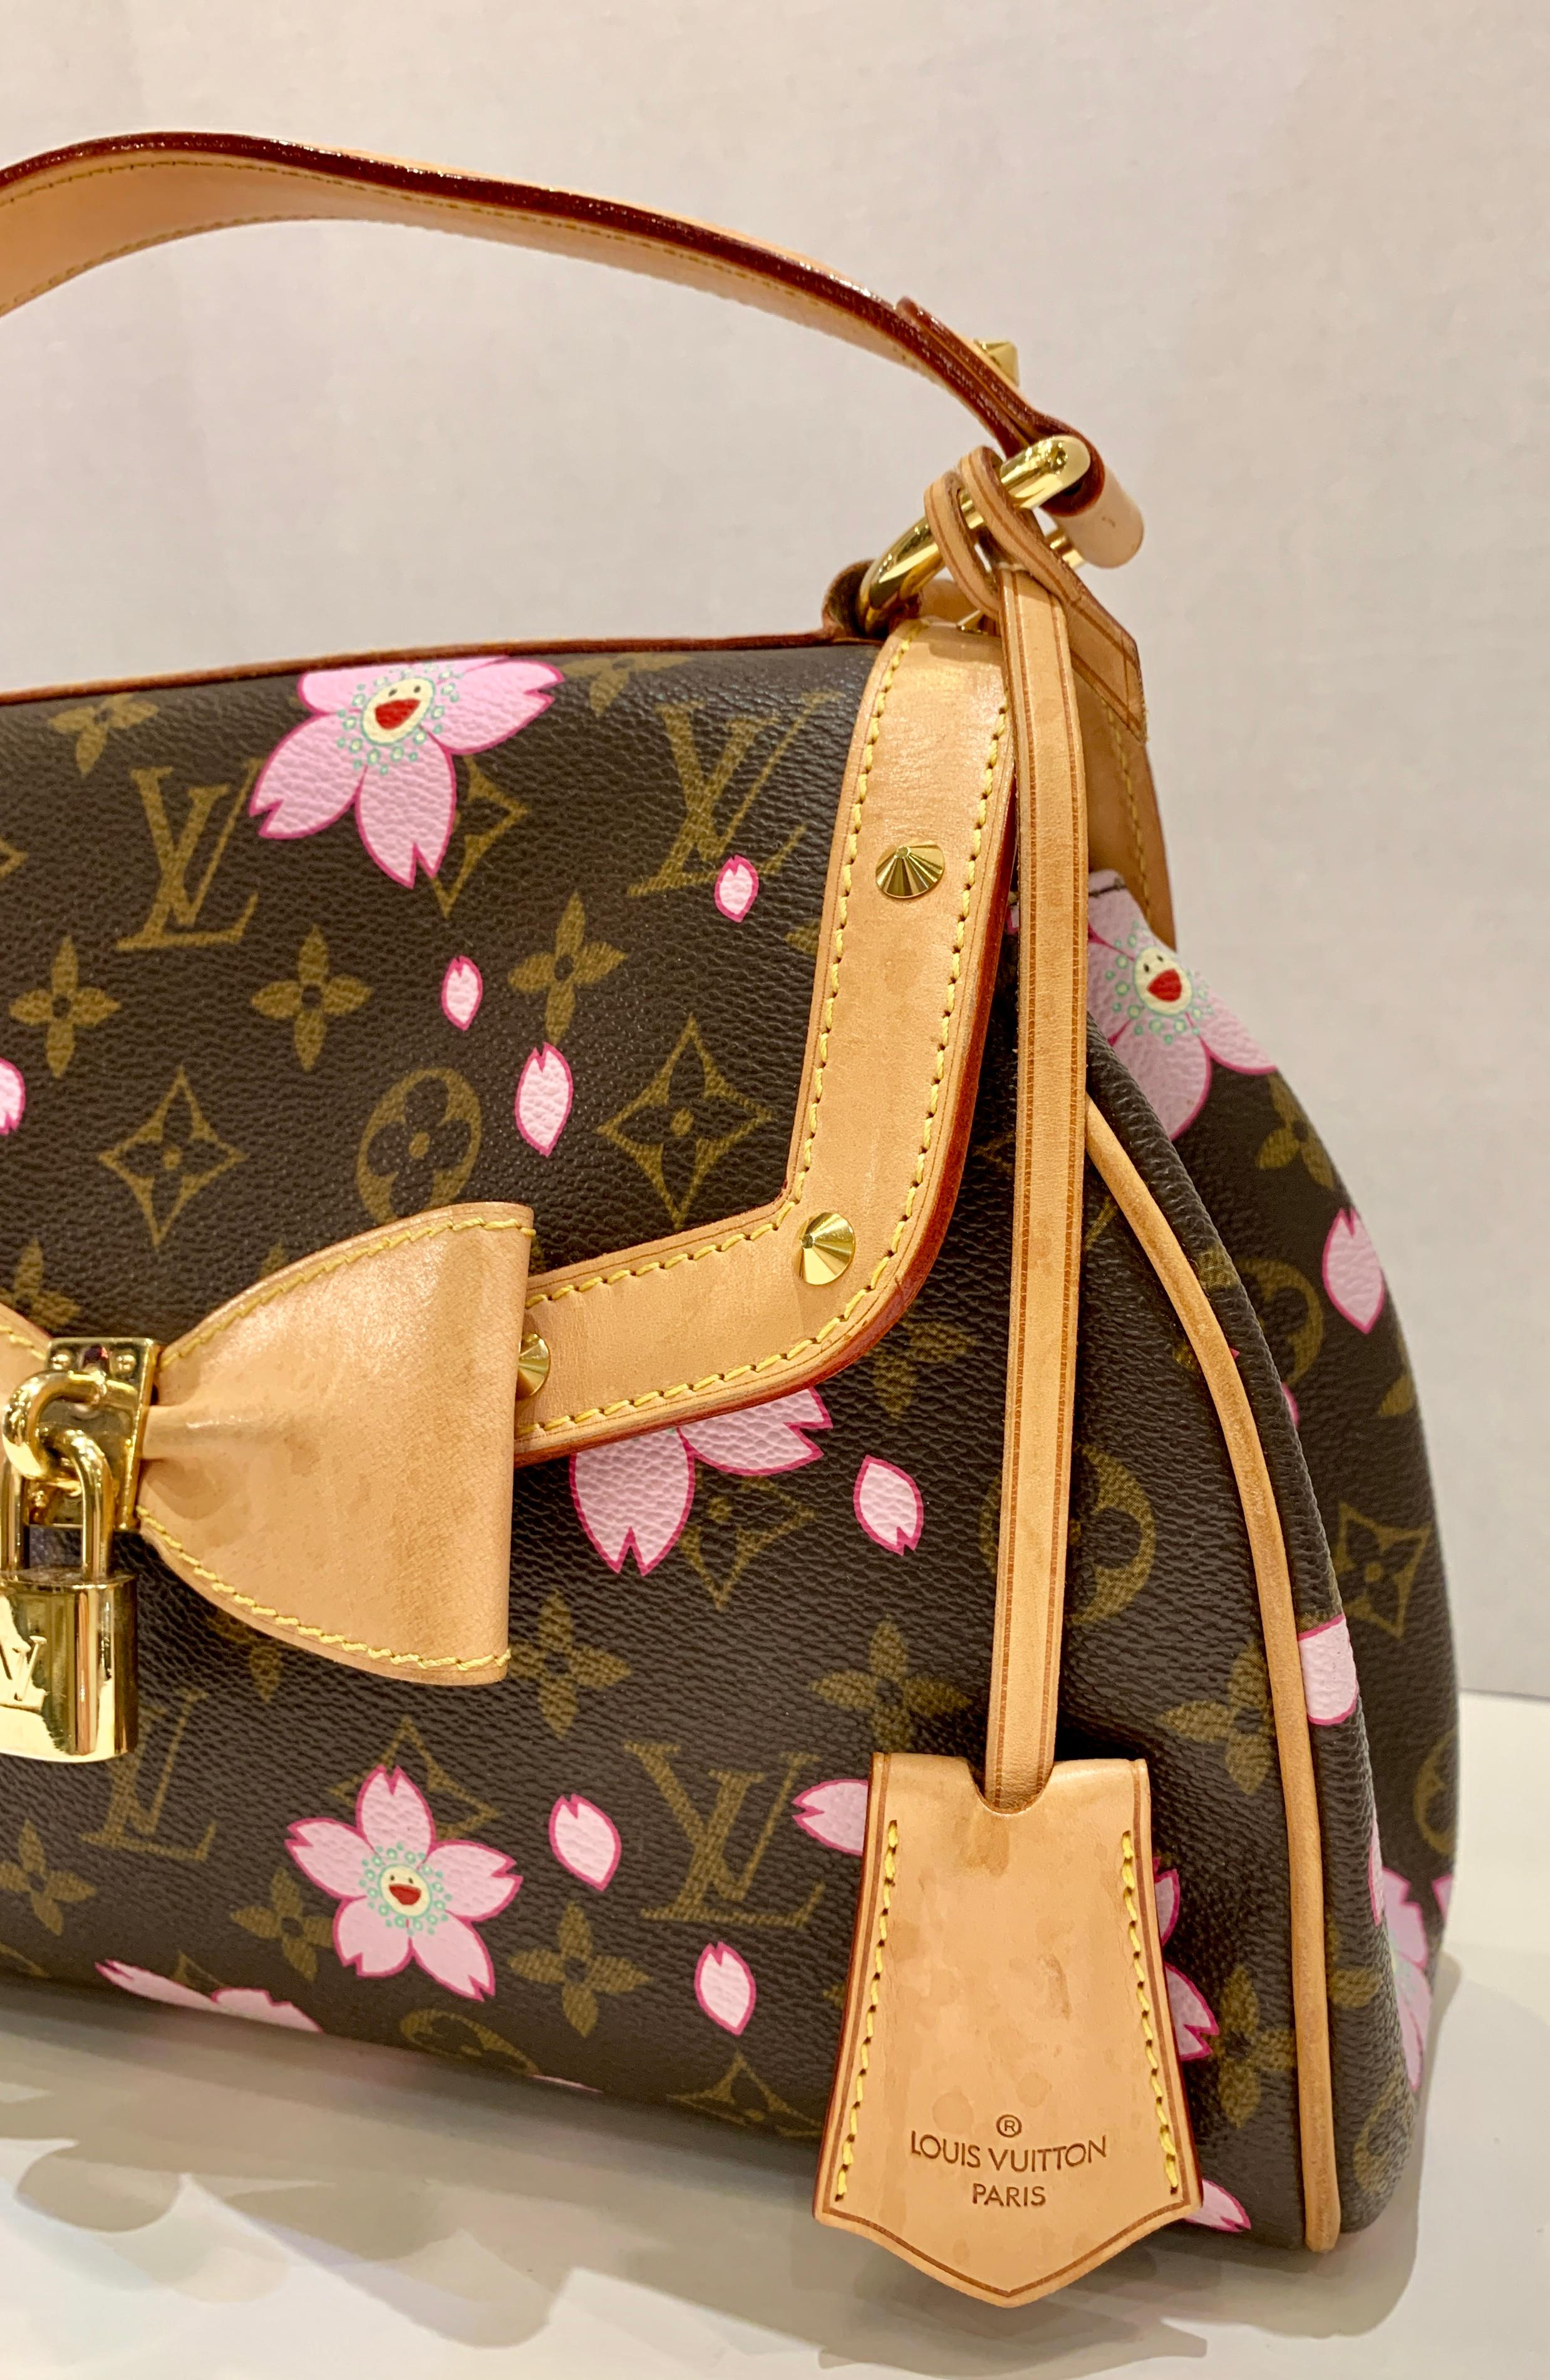 a7d29d6a74 Louis Vuitton Takashi Murakami Limited Edition Retro Cherry Blossom Purse  For Sale at 1stdibs